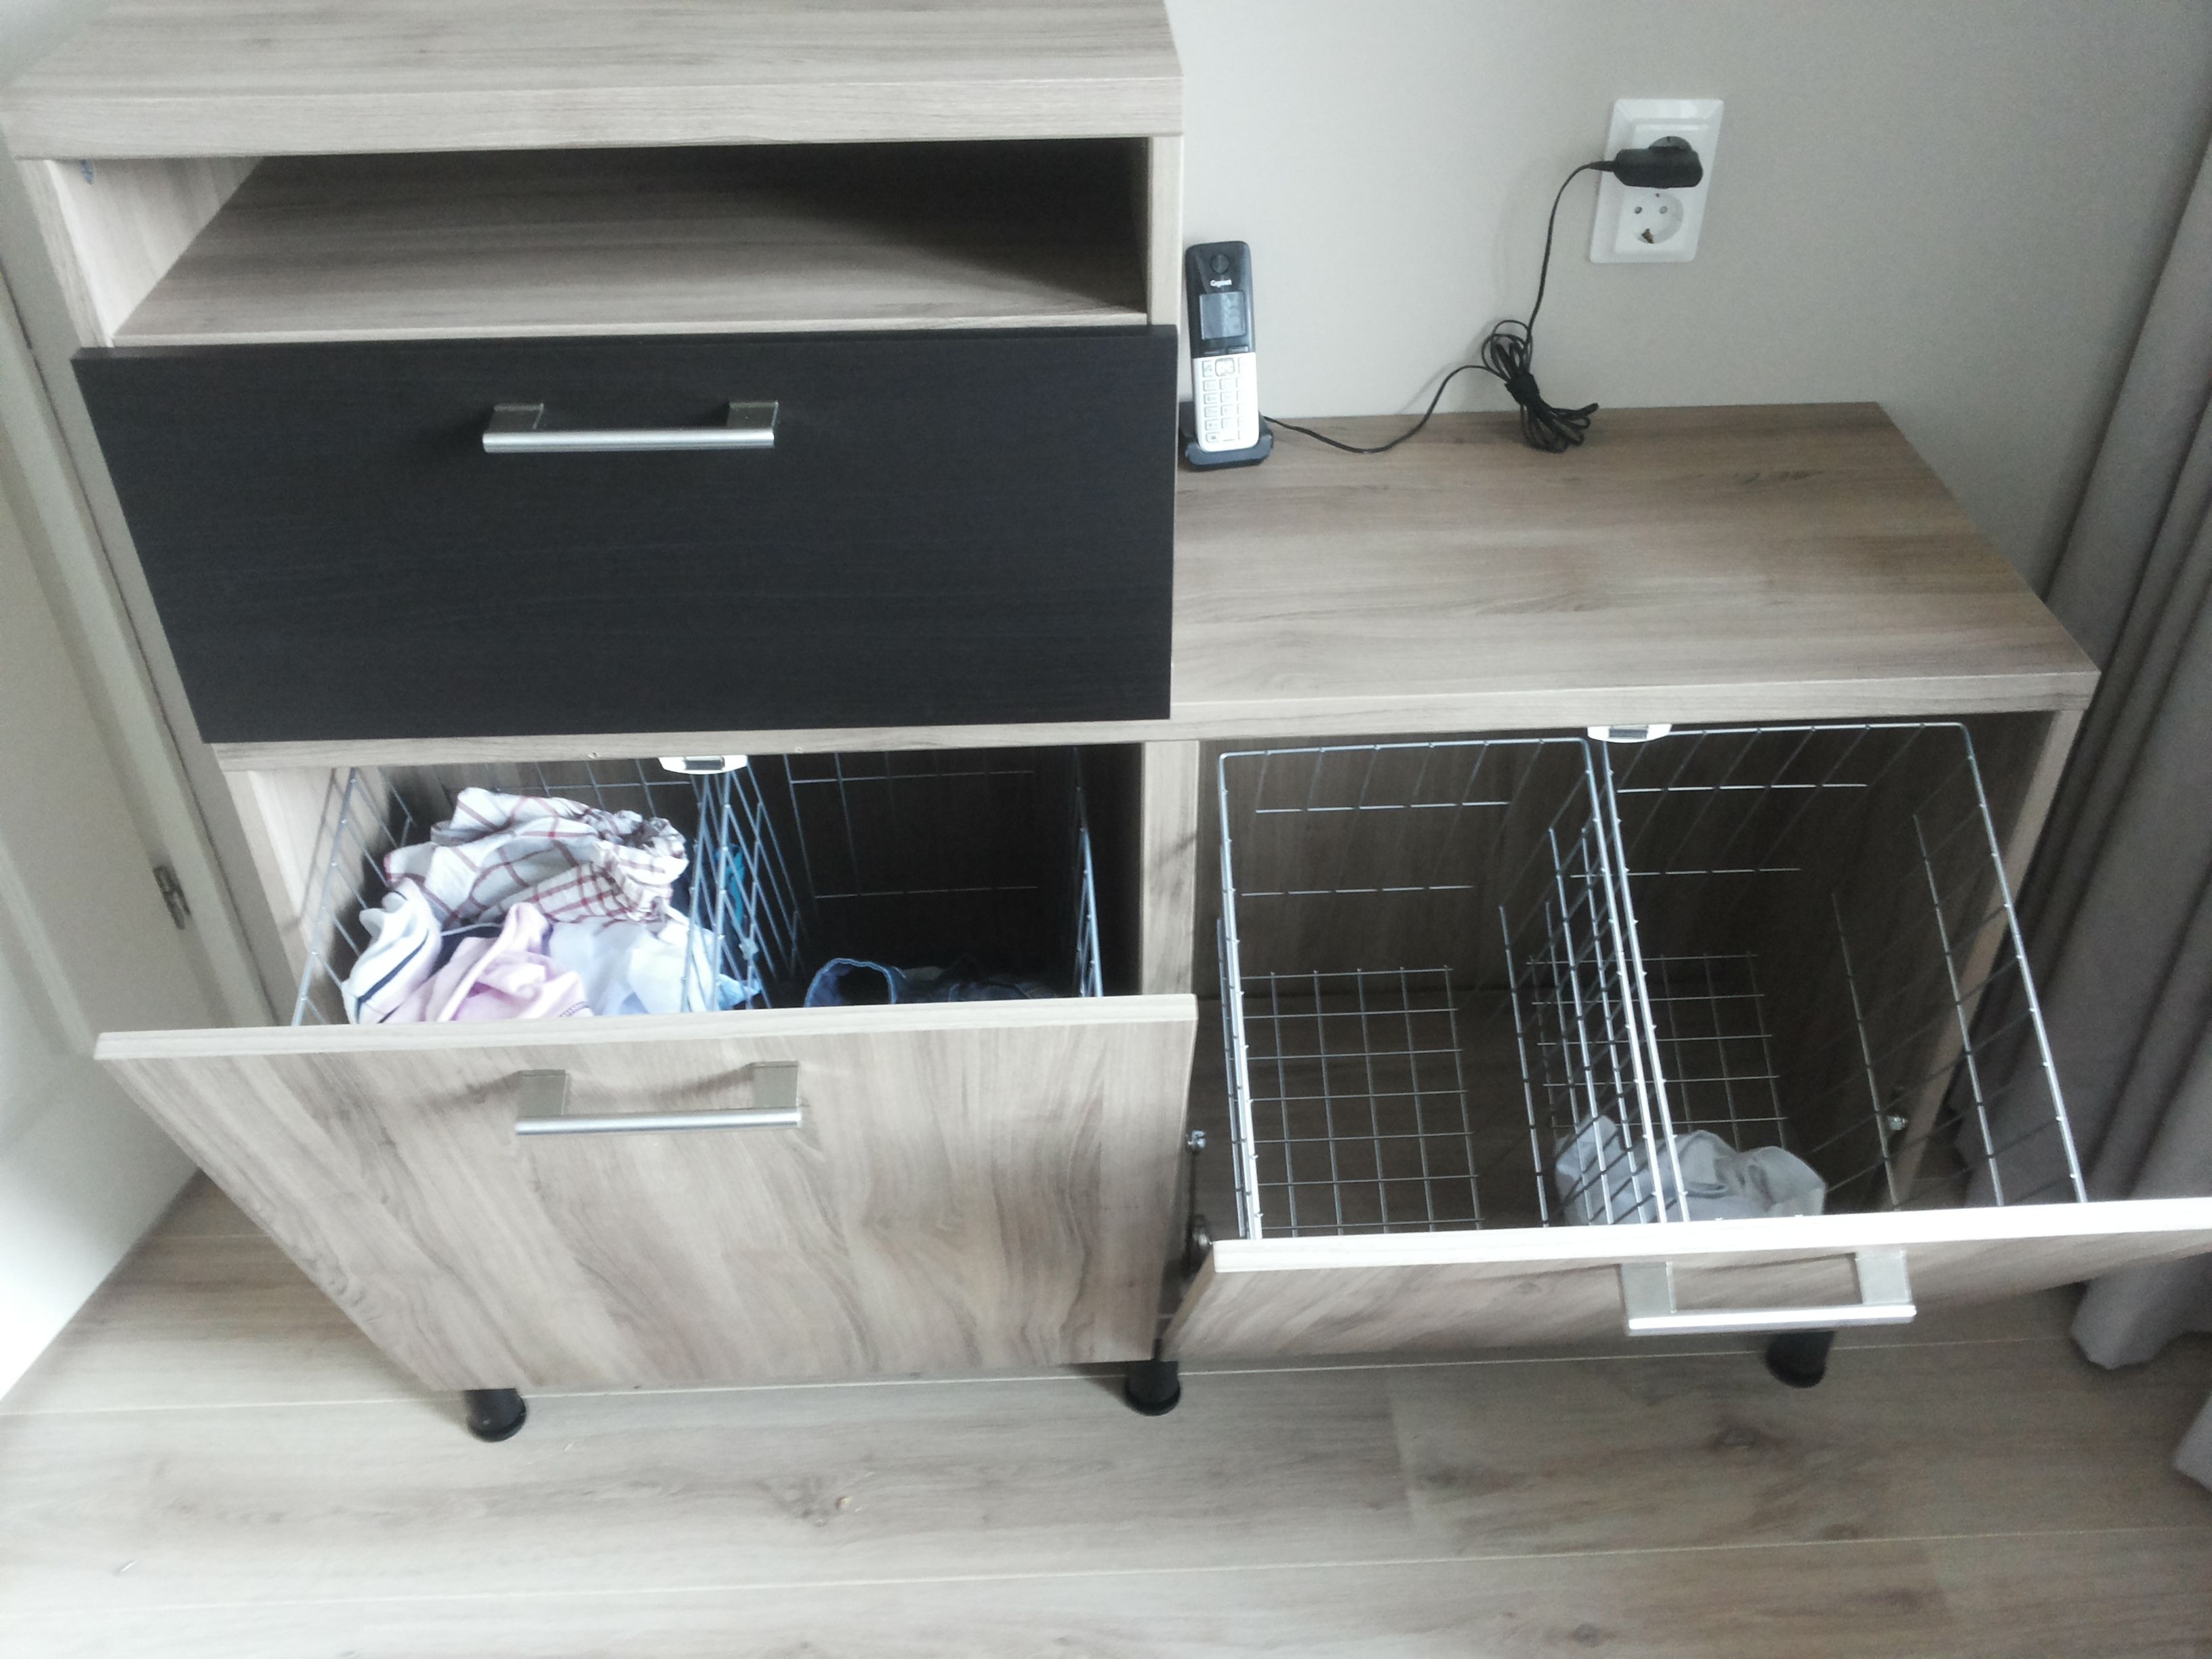 Maybe Weu0027ll Put The Laundry In The Basket. Besta Tilt Out Hamper   IKEA  Hackers